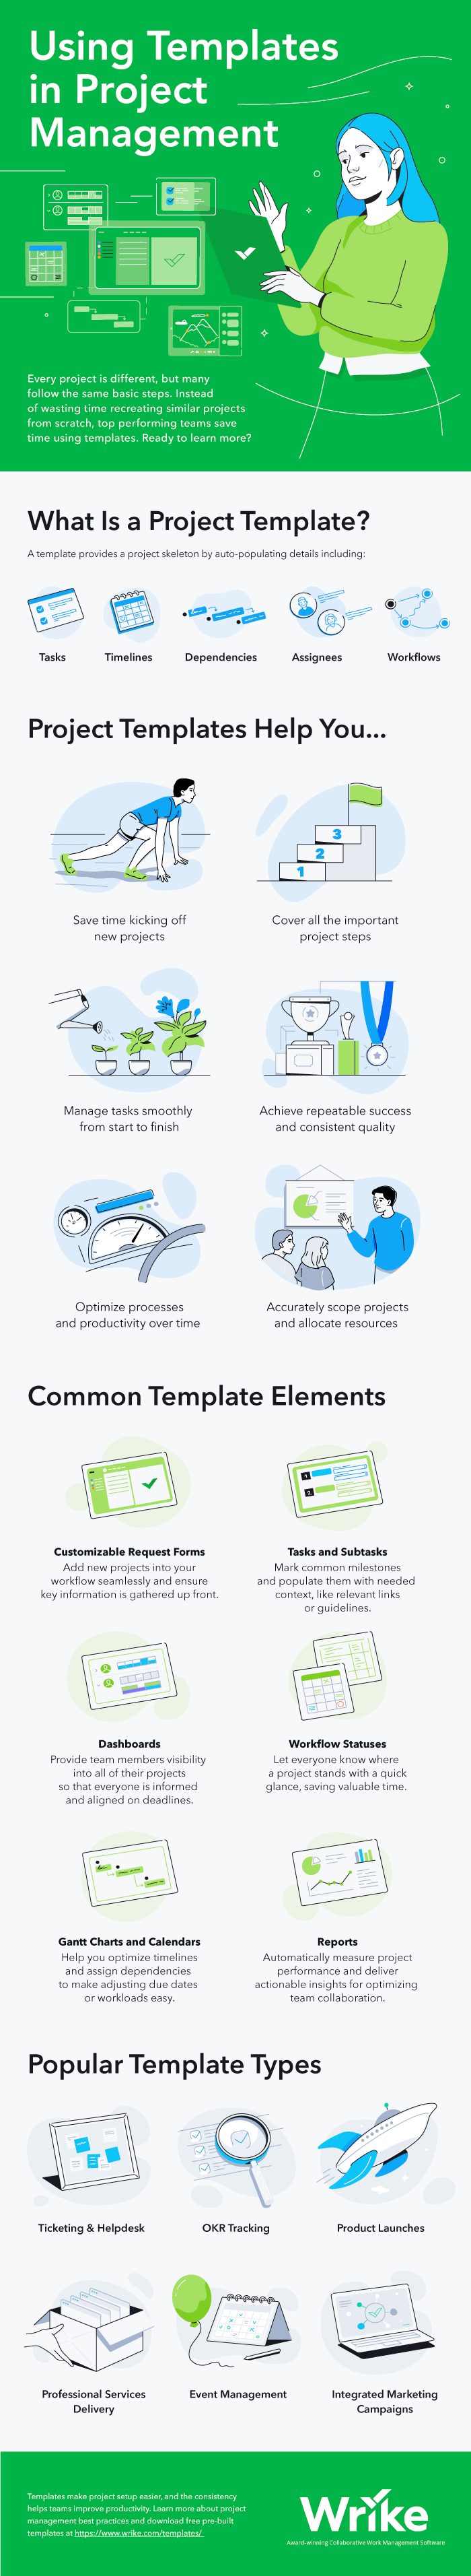 Using Templates in Project Management Infographic 2